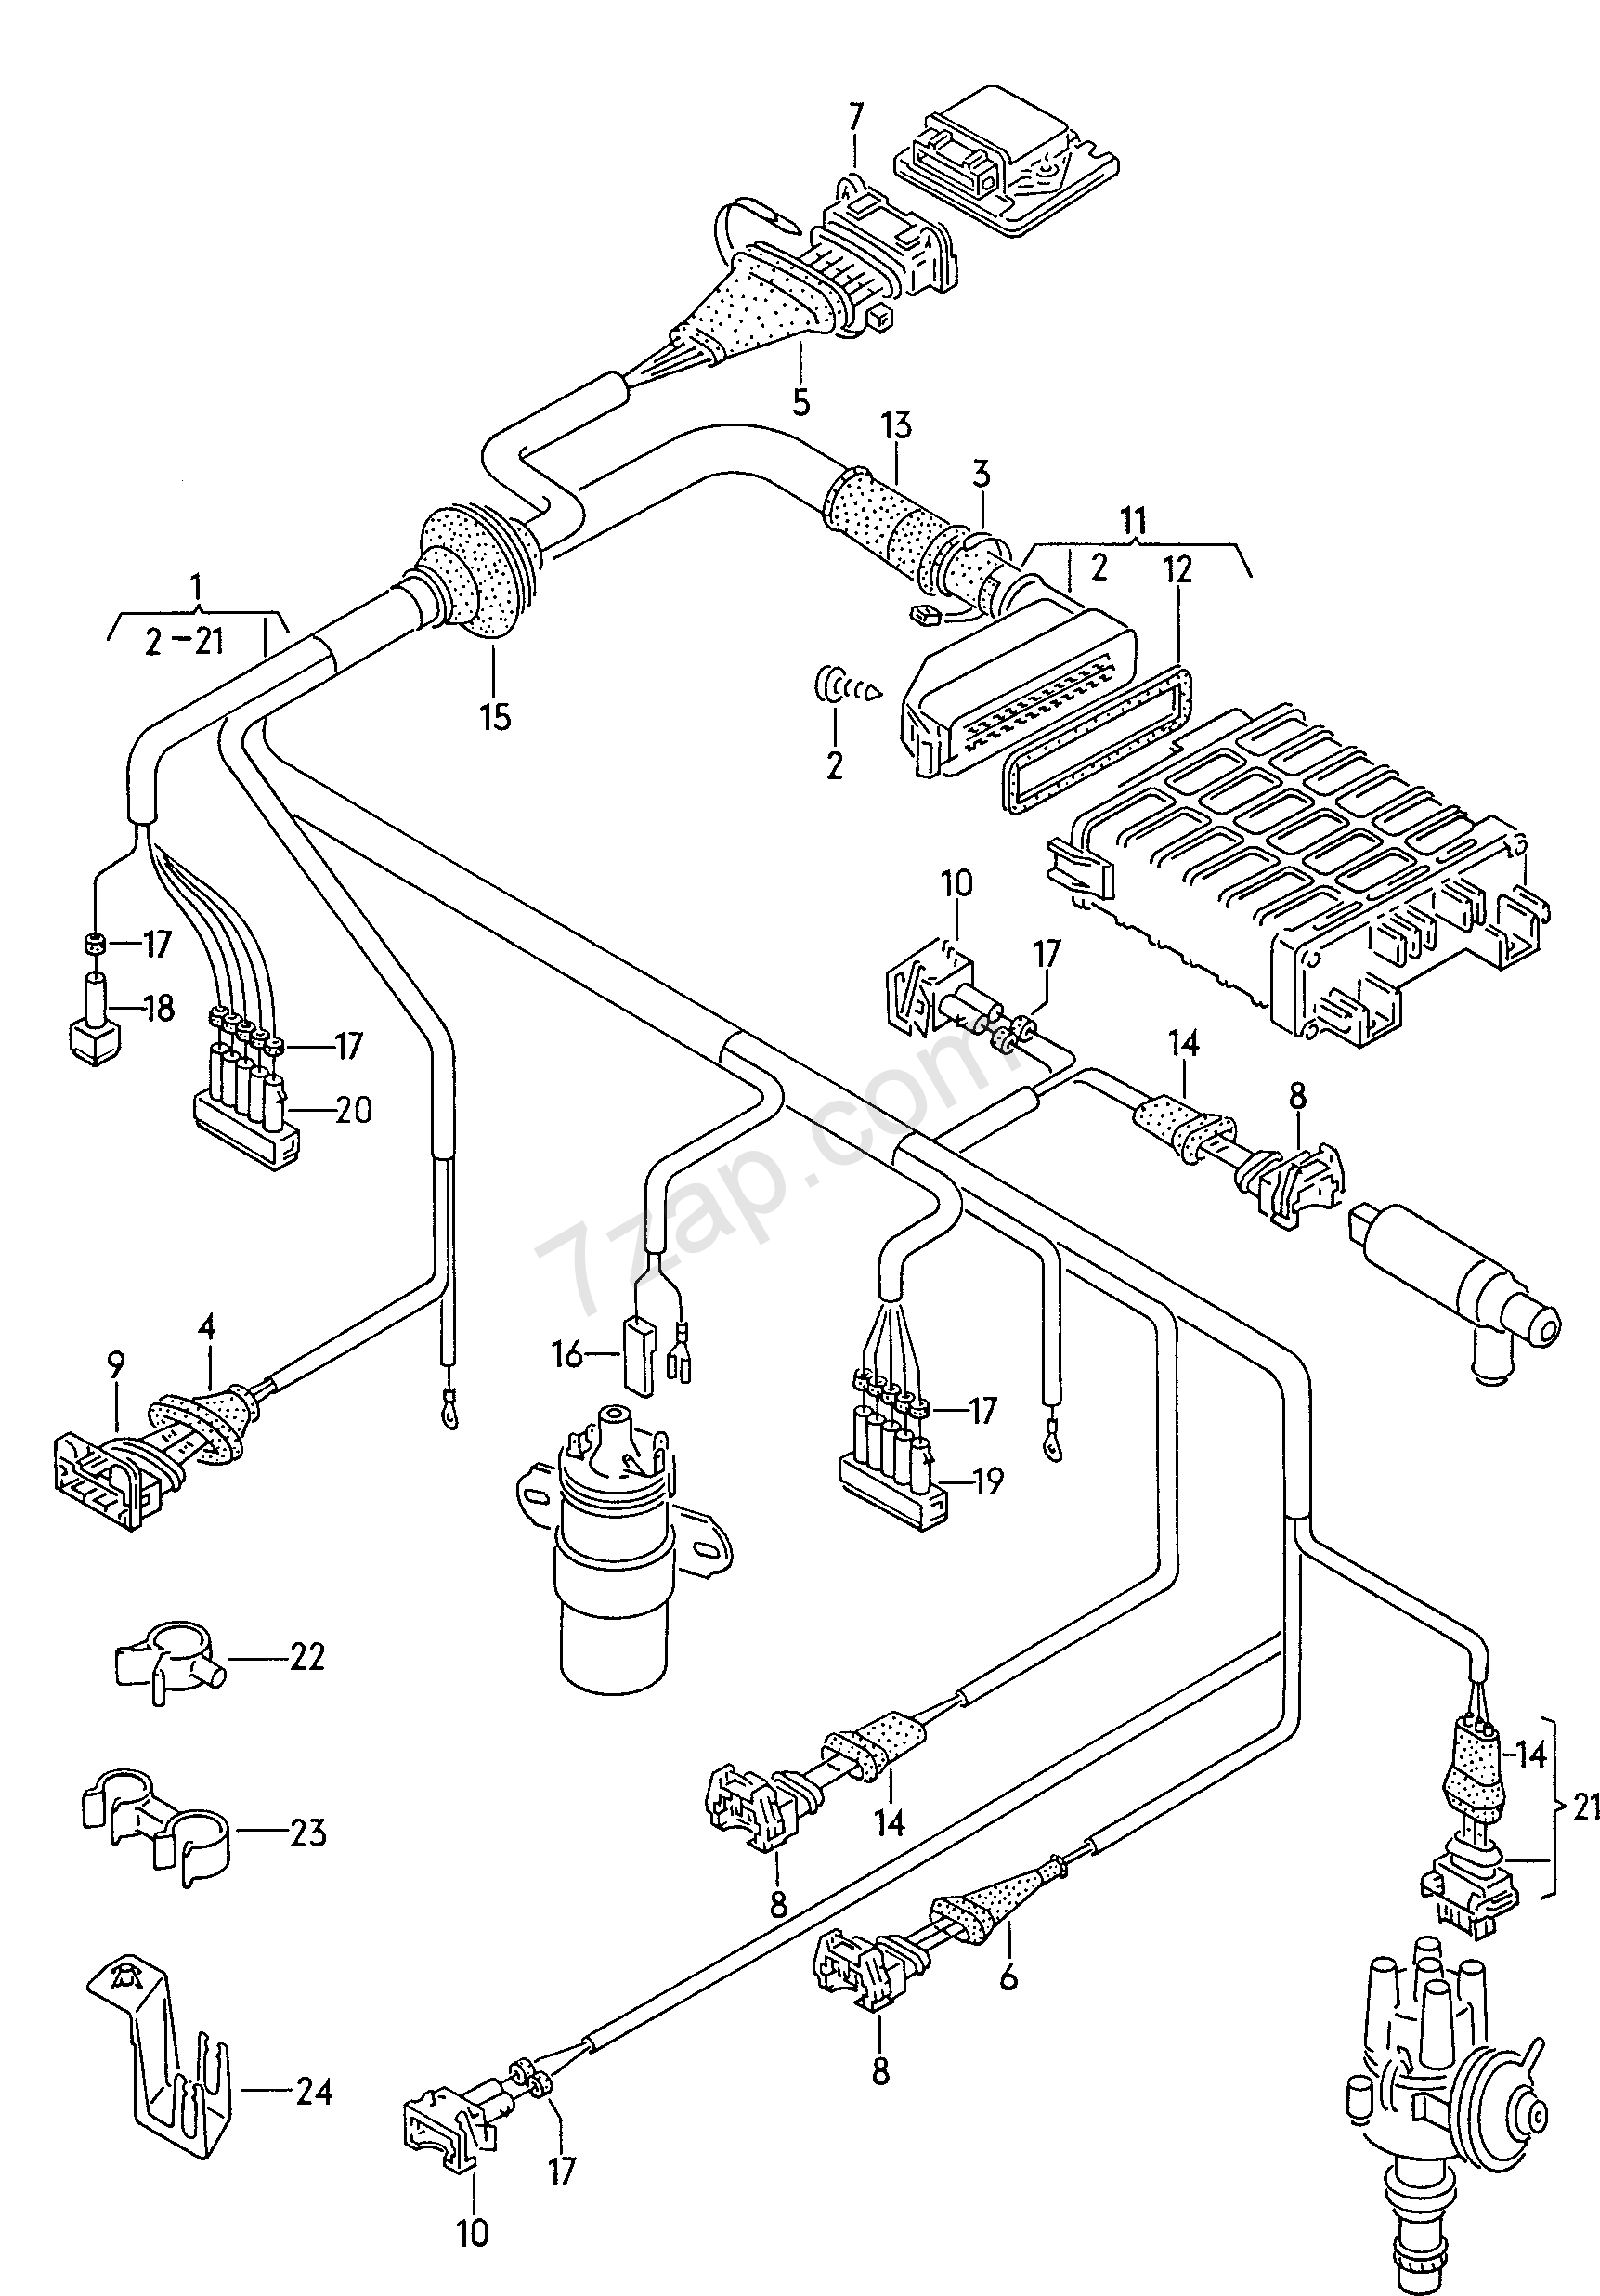 Wiring Harness For Transistorized Ignition System Golf Cabriolet 1991 Vw Diagrams Cabrioletgoc Europa Year